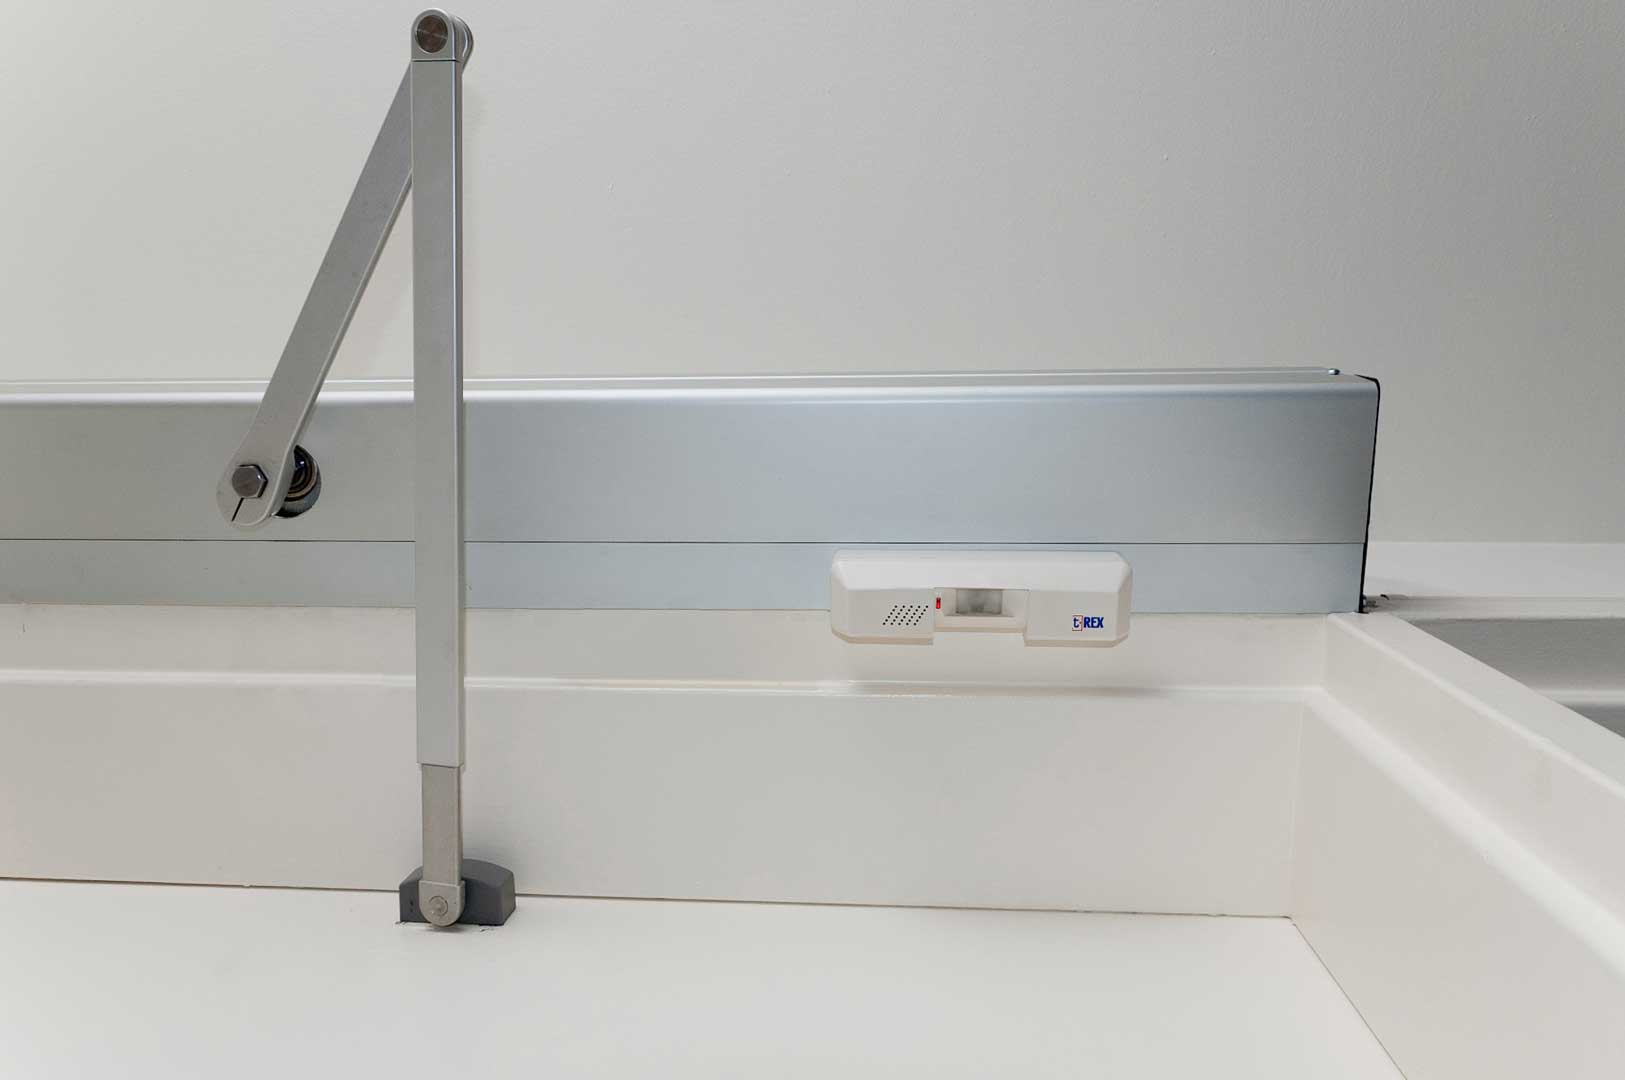 Presence Sensor on Tormax iMotion 1101 Installed by Explore1.ca in Concert Hall in Toronto